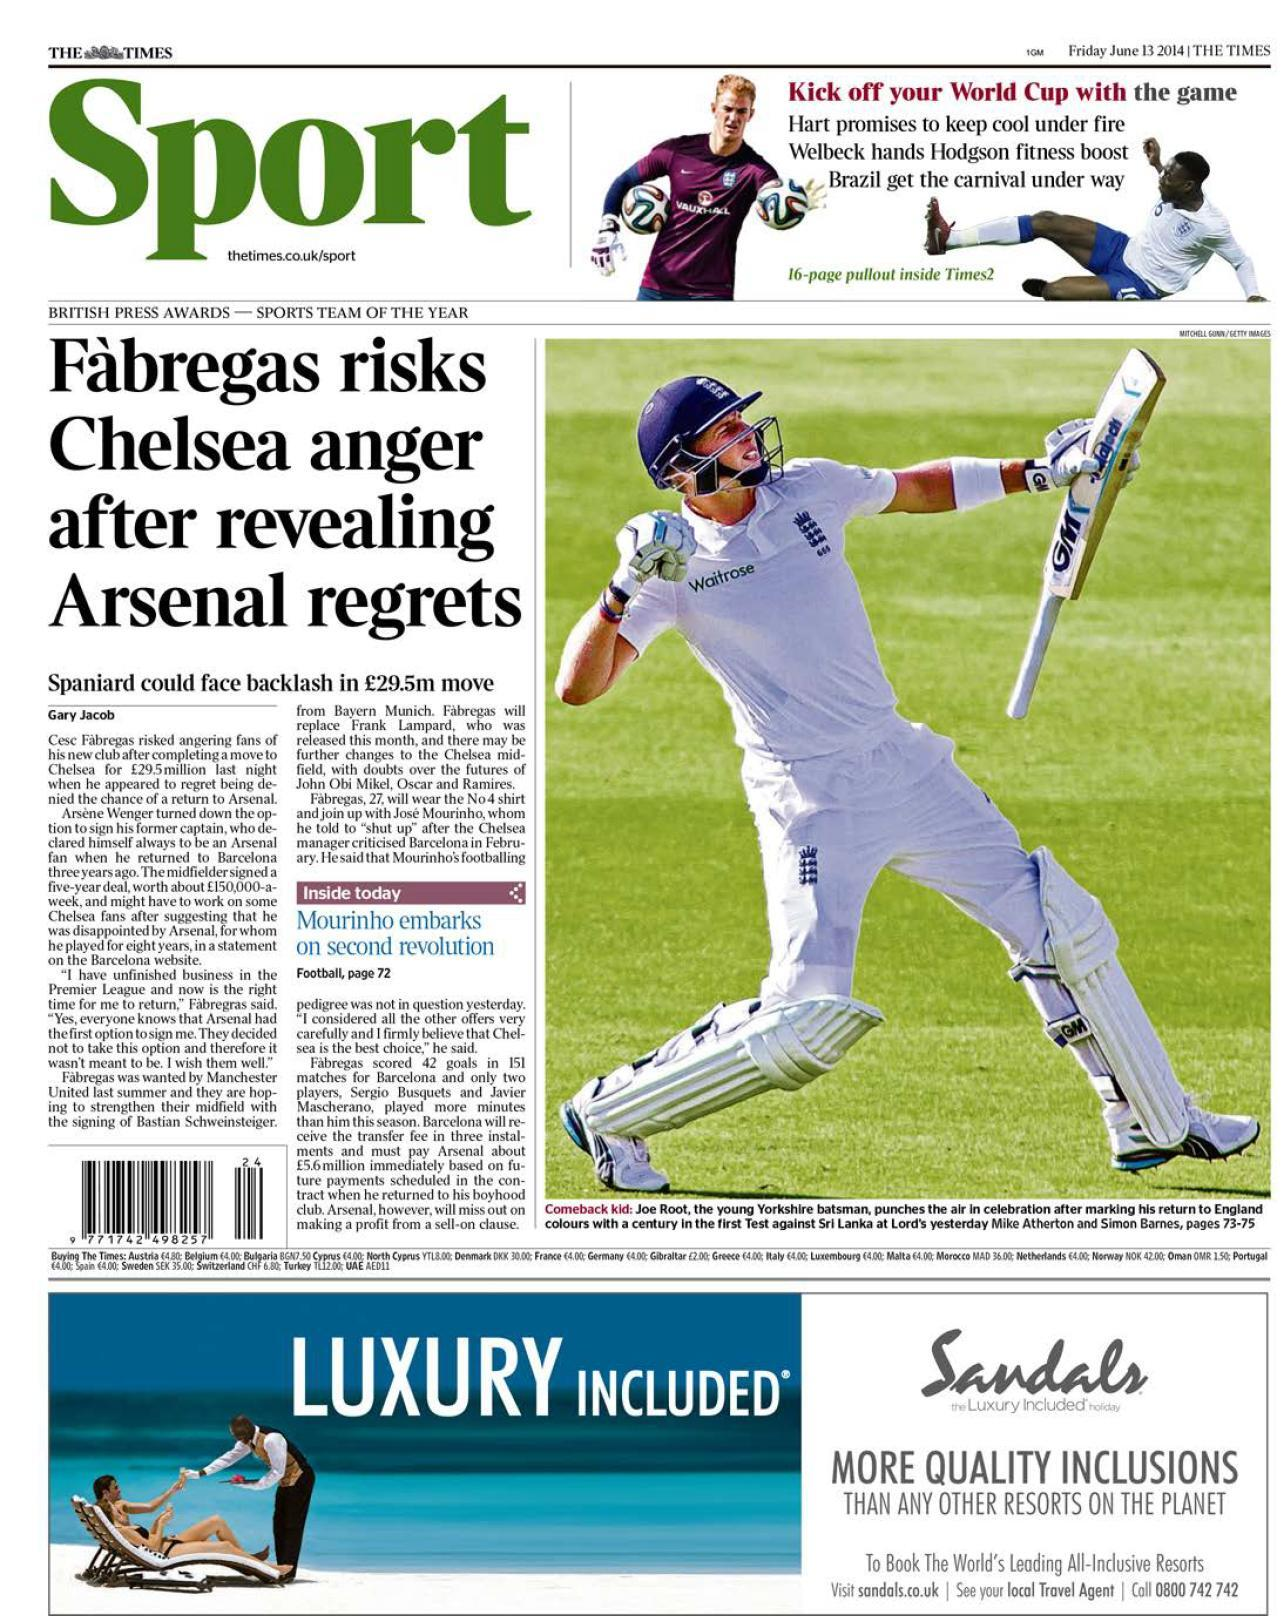 Barcelona have to pay Arsenal £5.6m for selling Cesc Fabregas to Chelsea [The Times]